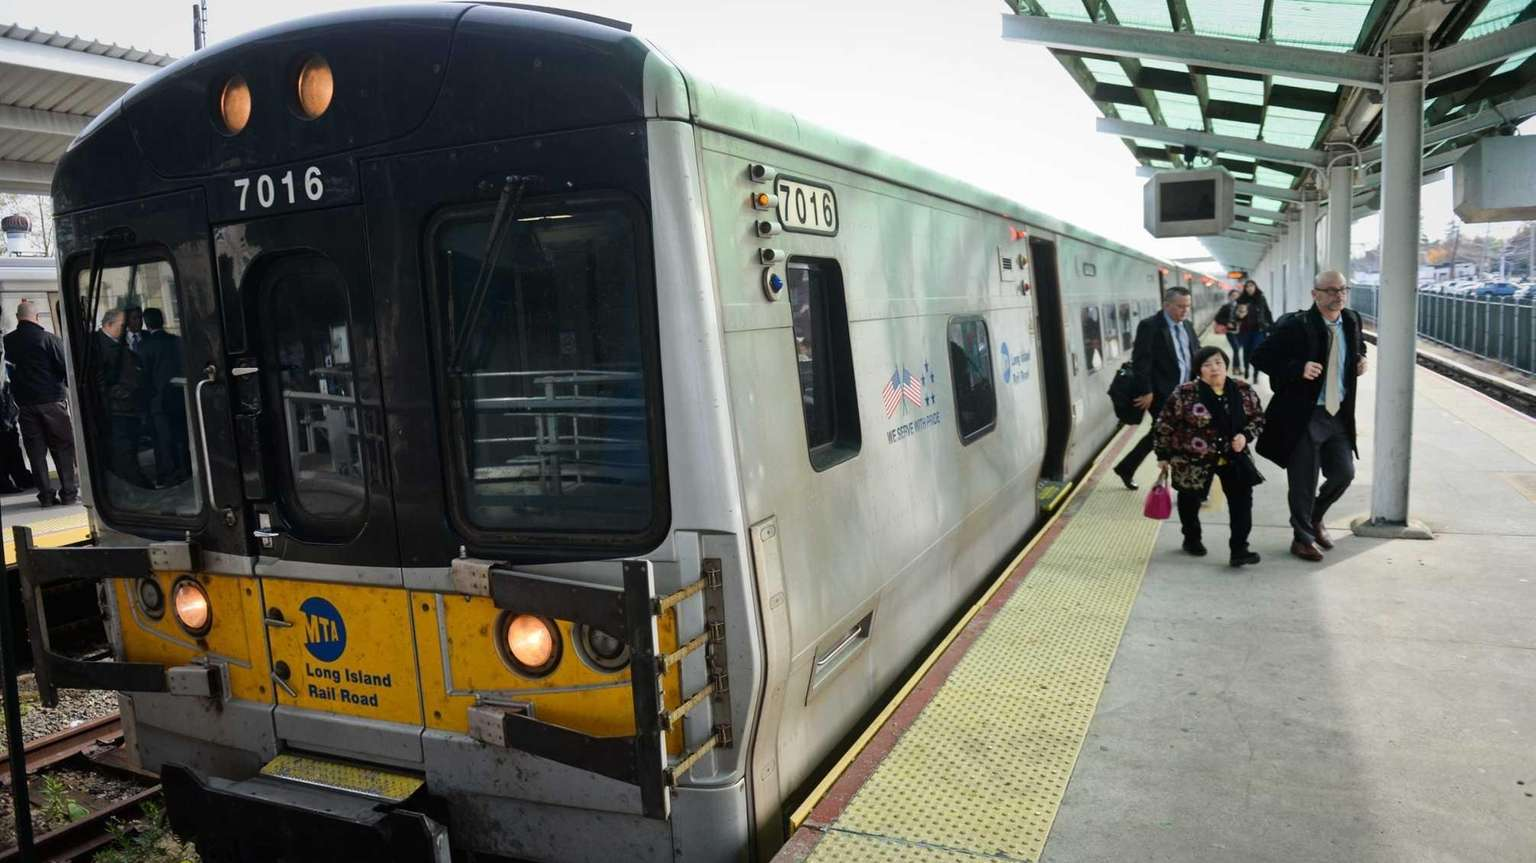 The prospect of a Long Island Rail Road